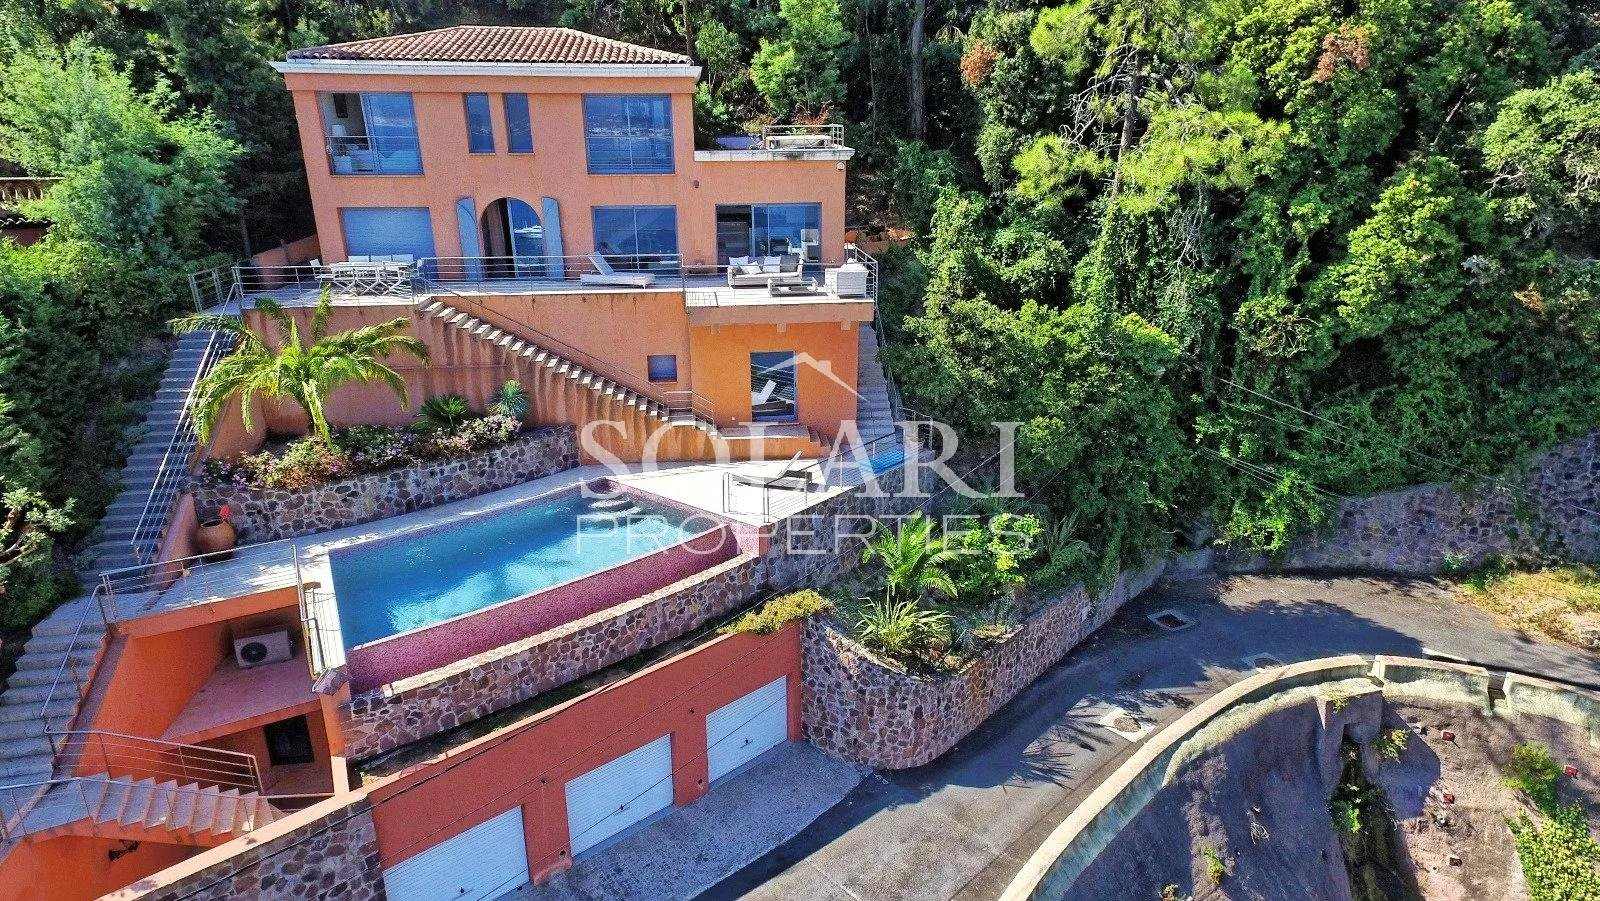 Villa with pool enjoying views over the Cannes Bay